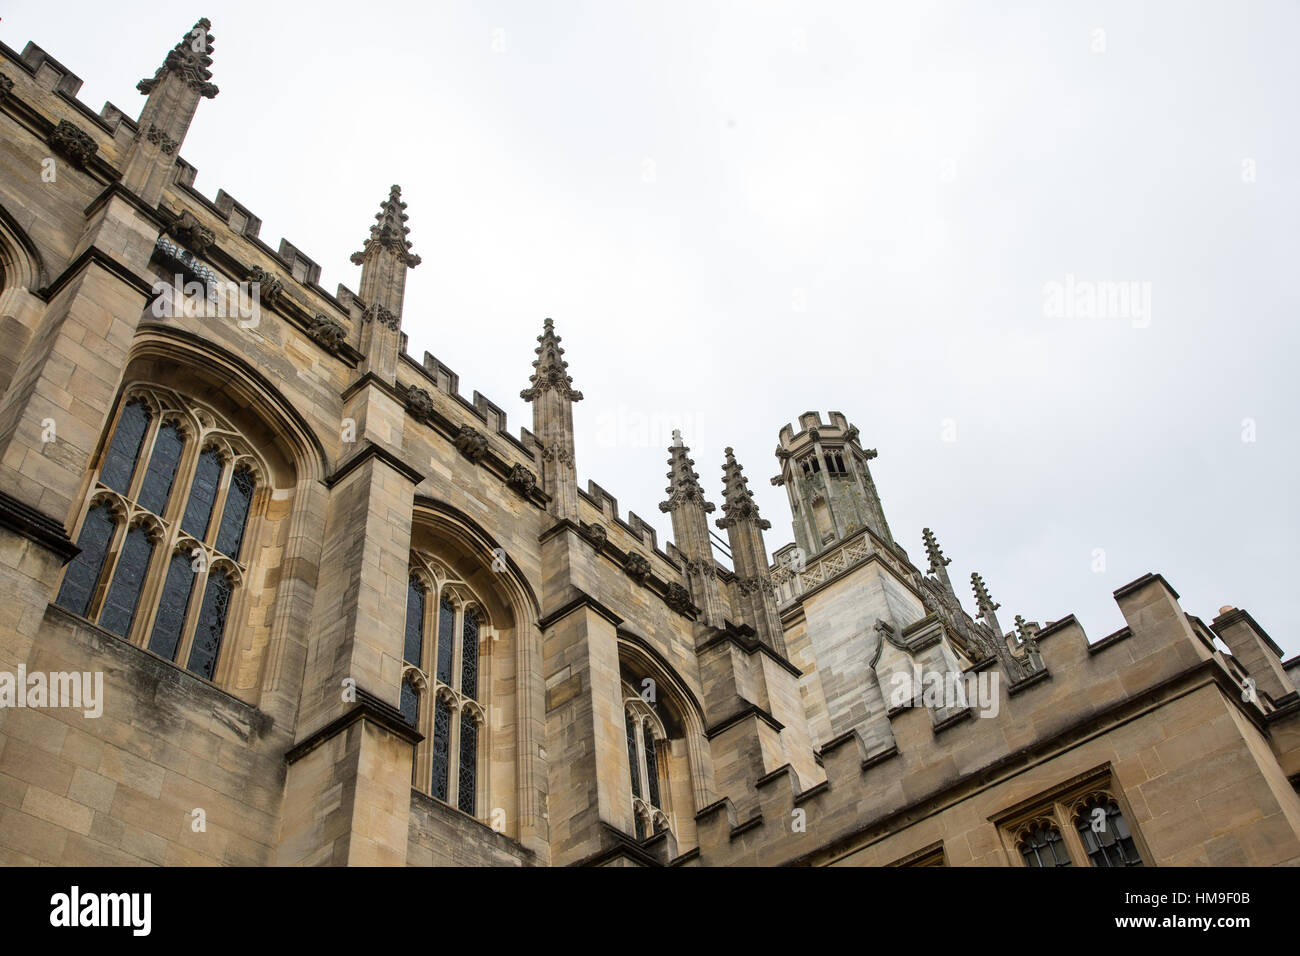 Jesus College Oxford showing details of the architechture - Stock Image